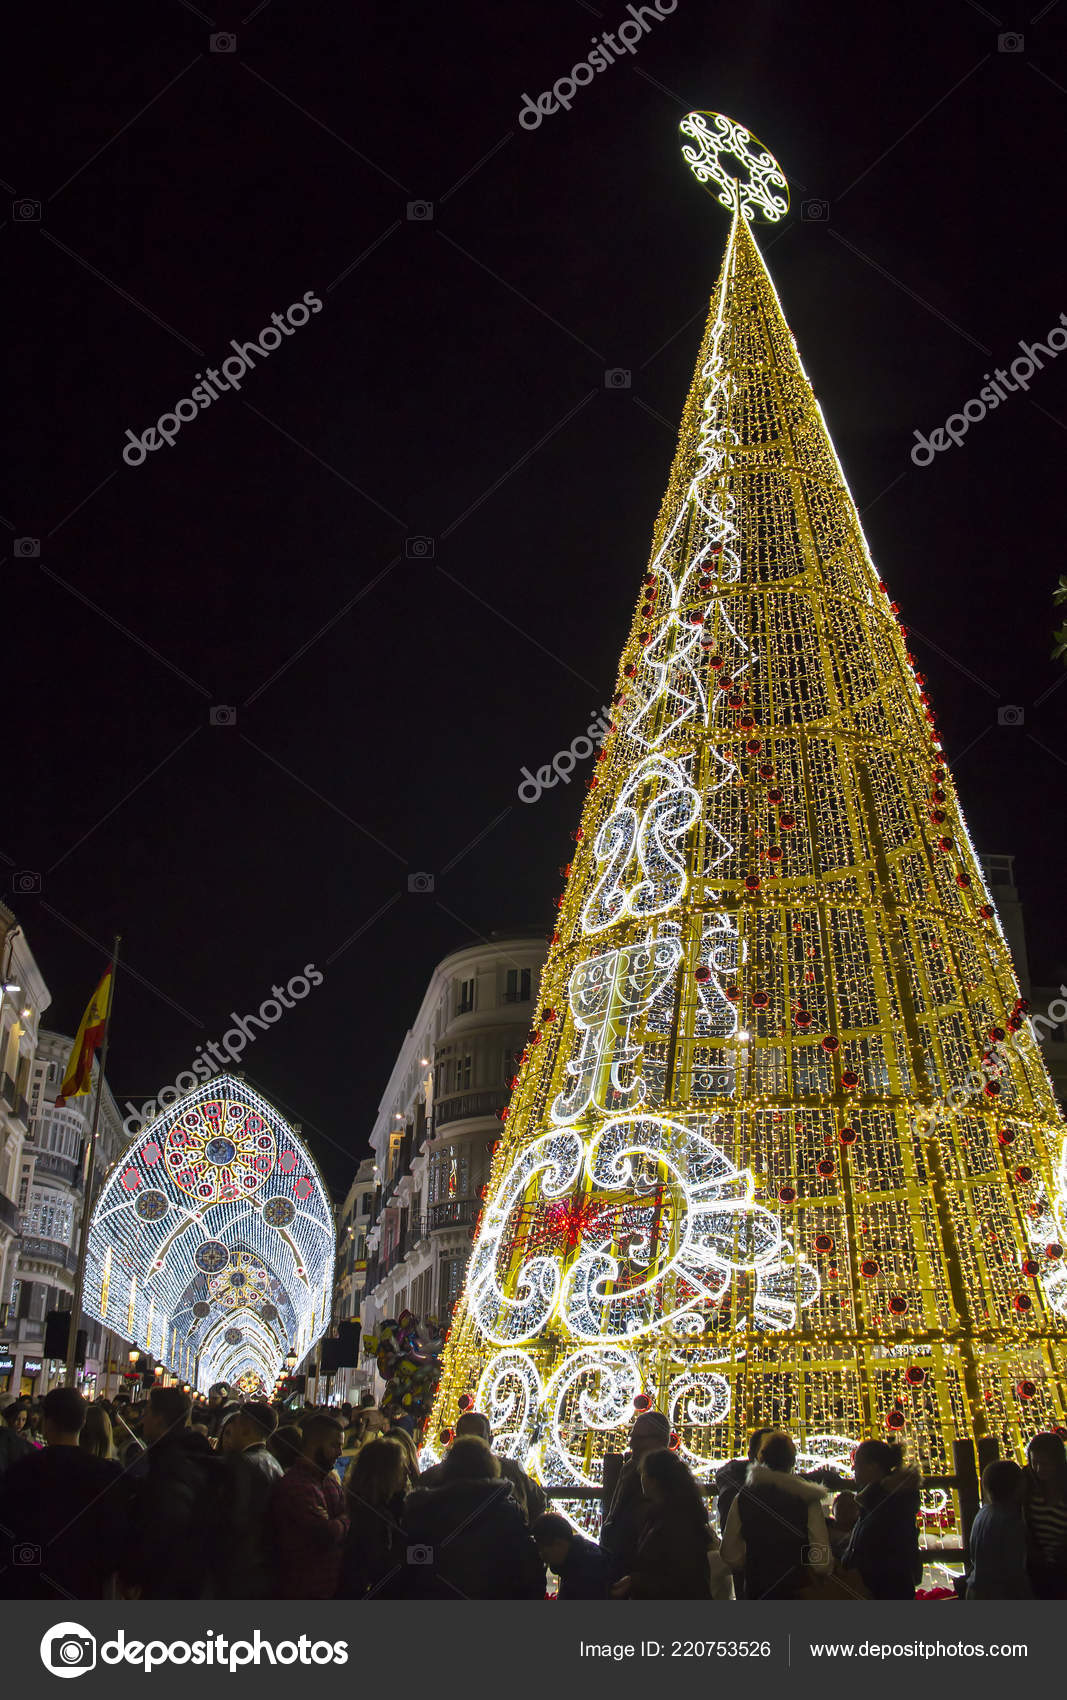 Malaga Spain December 2017 Christmas Tree Holiday Decorations Center Malaga — Stock Photo